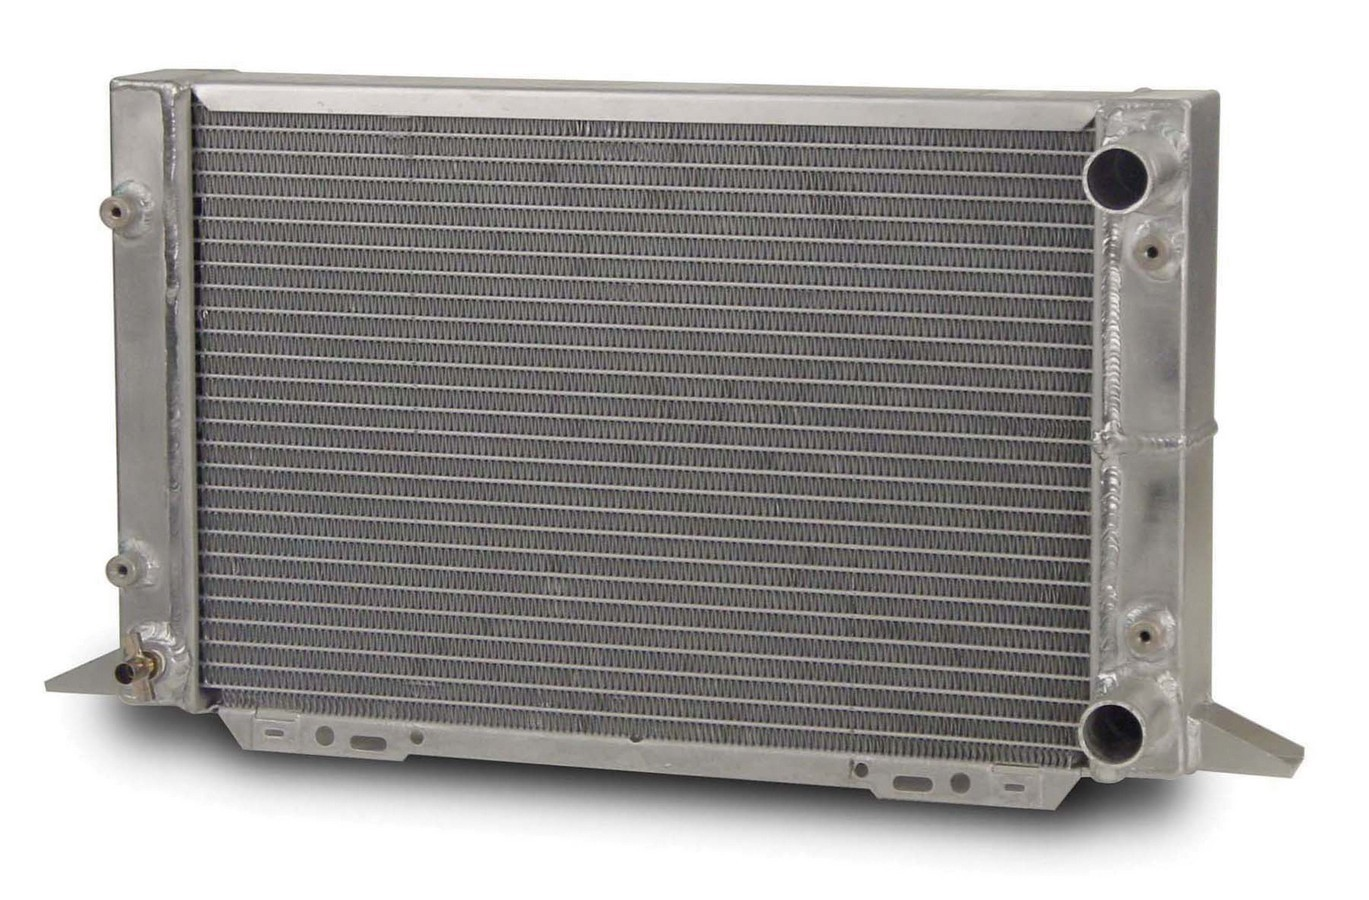 AFCO Racing Products 80107N Radiator, Scirocco, 21-1/2 in W x 12-5/8 in H x 3 in D, Passenger Side Inlet, Passenger Side Outlet, Aluminum, Natural, Each